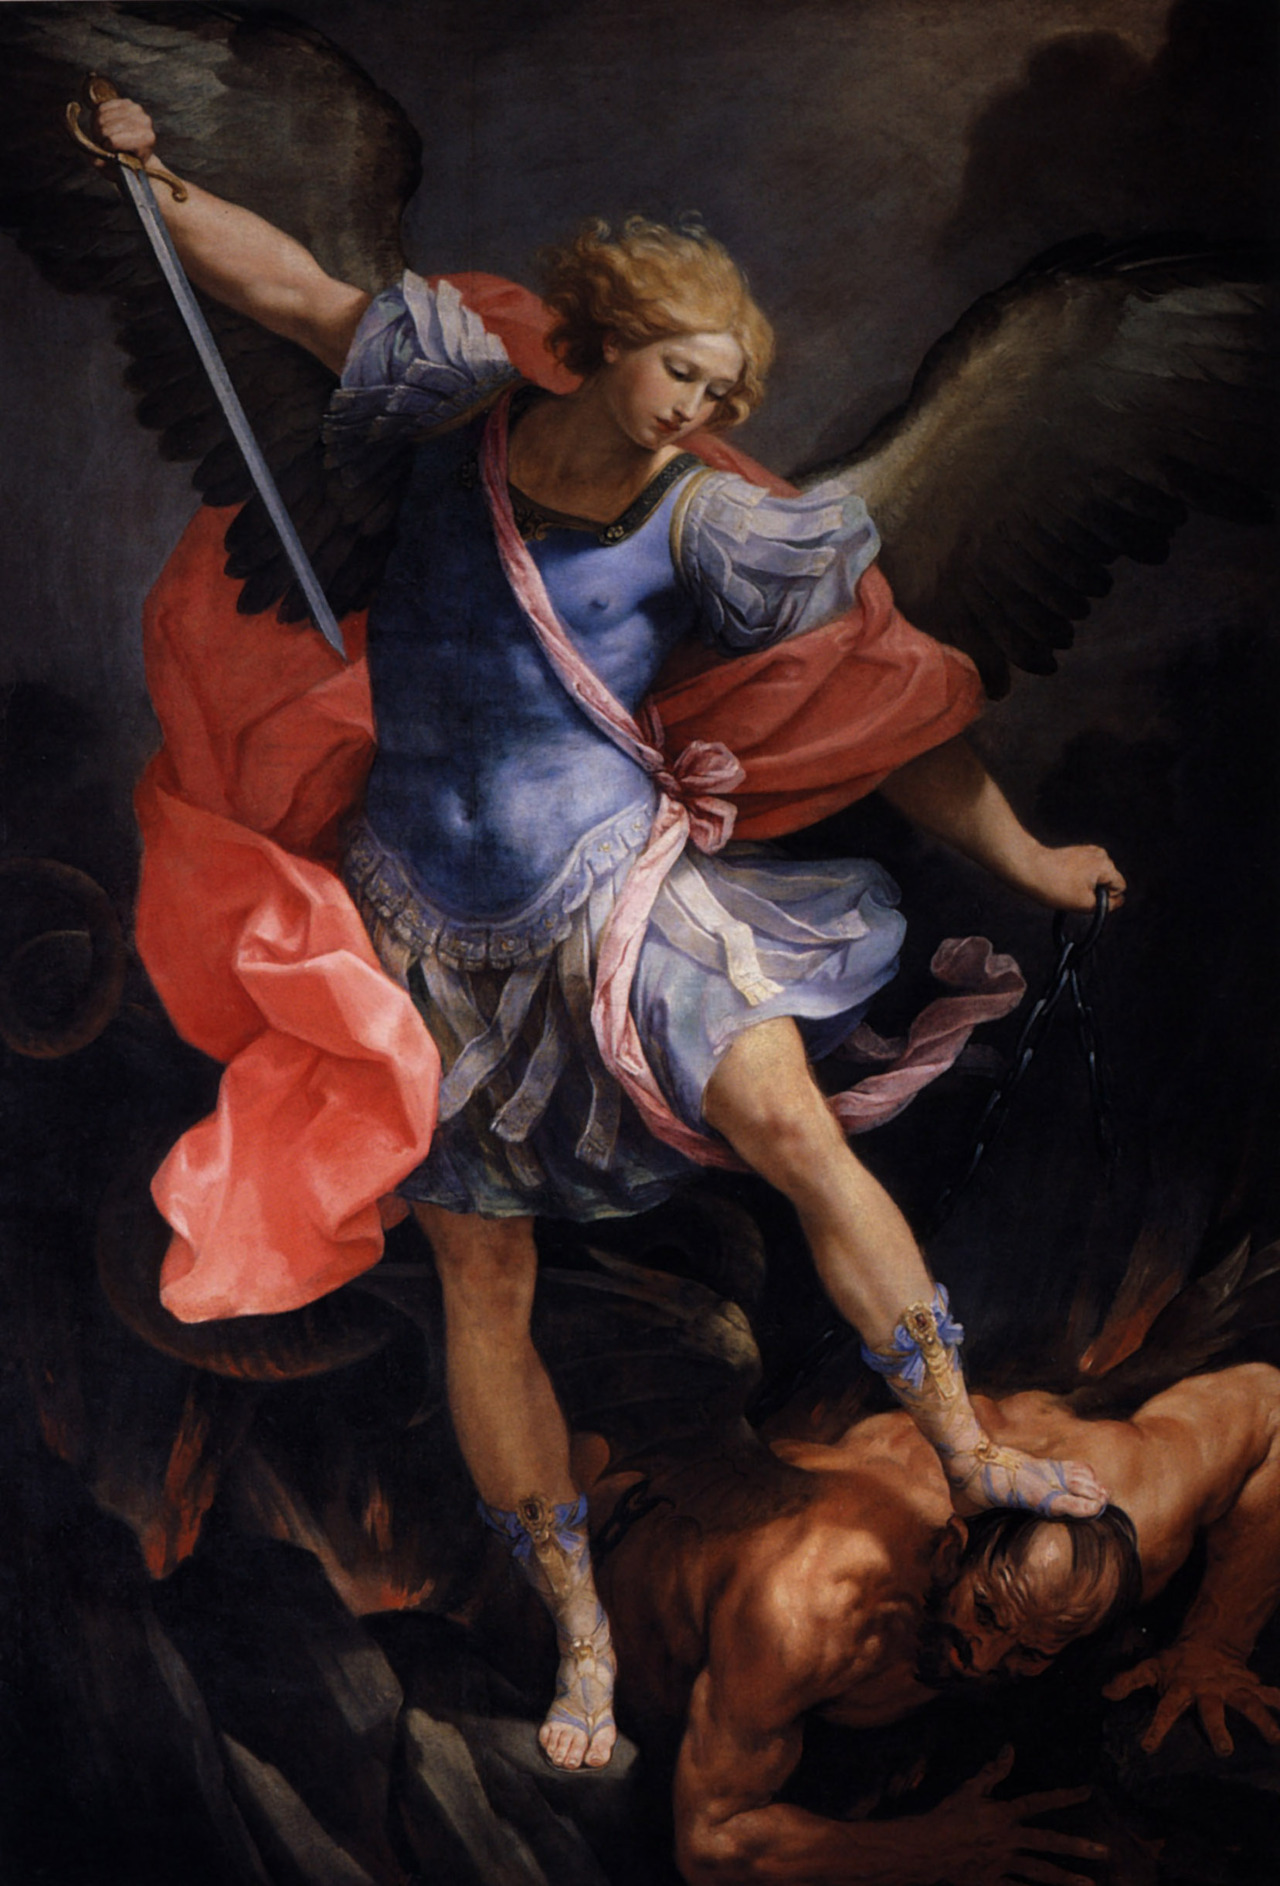 Guido Reni - The Archangel Michael, 1636. Oil on canvas